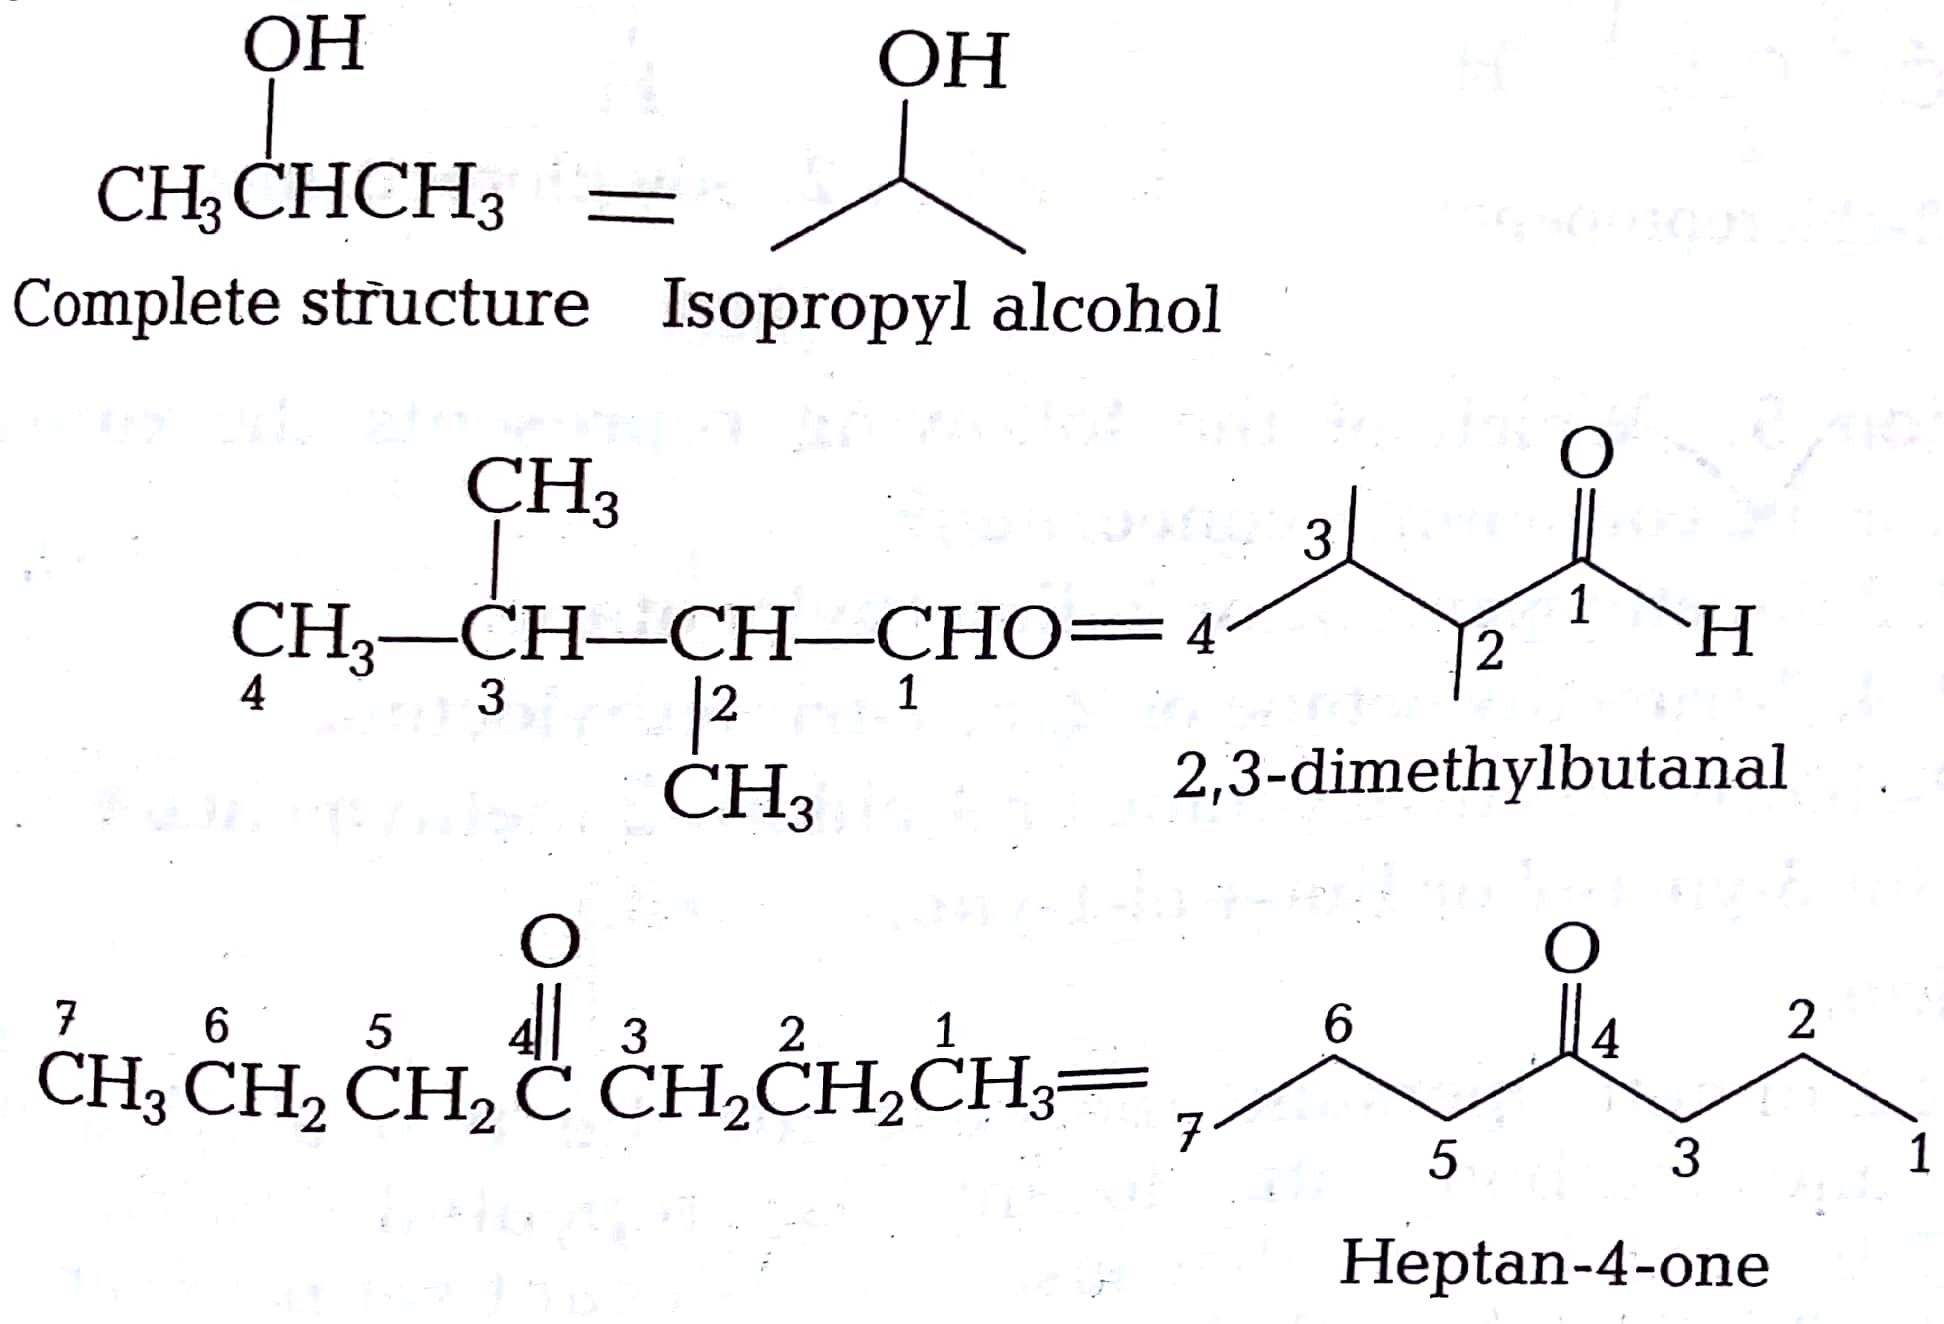 isopropyl alcohol condensed structural formula